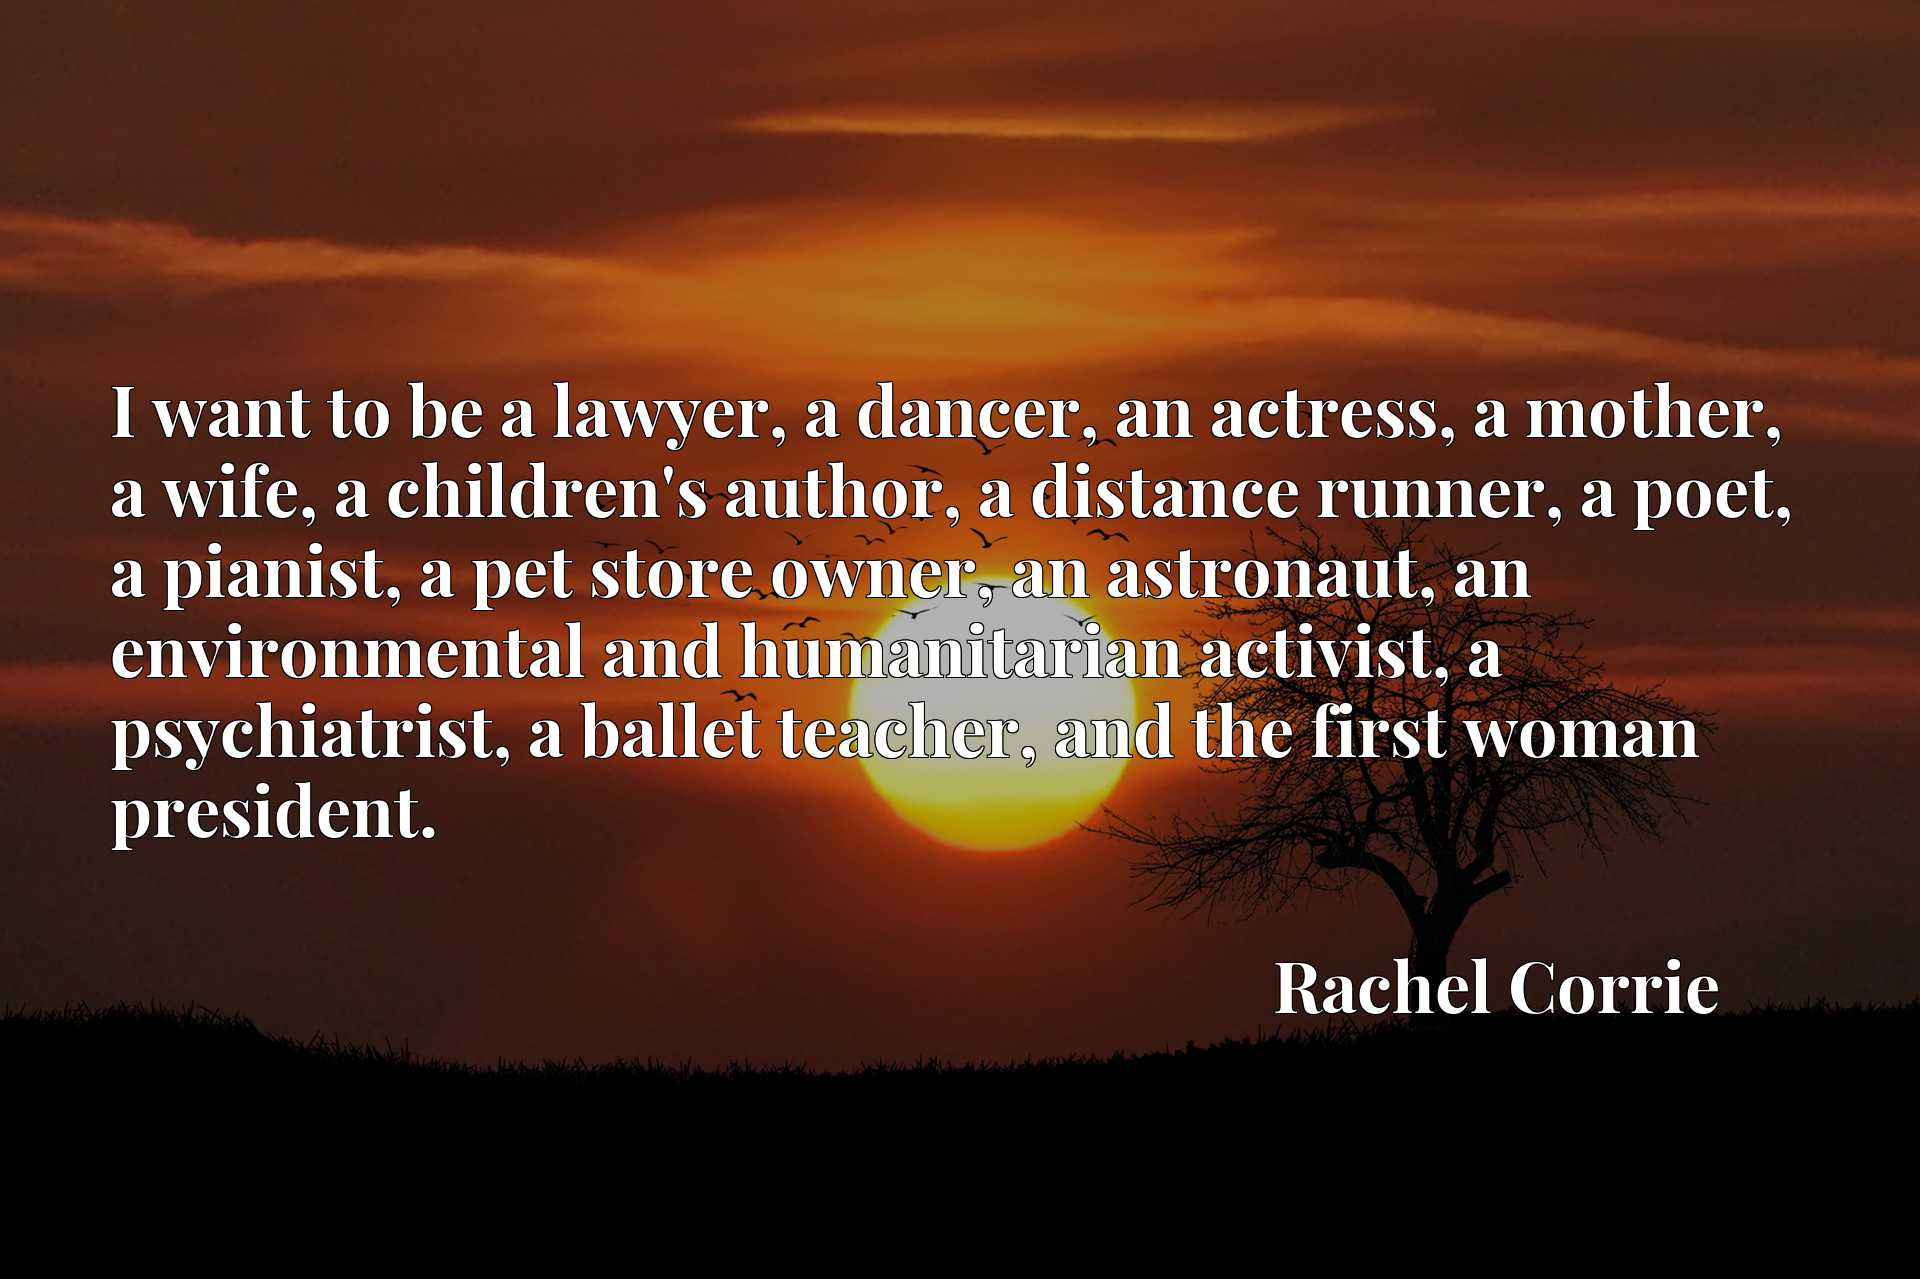 I want to be a lawyer, a dancer, an actress, a mother, a wife, a children's author, a distance runner, a poet, a pianist, a pet store owner, an astronaut, an environmental and humanitarian activist, a psychiatrist, a ballet teacher, and the first woman president.